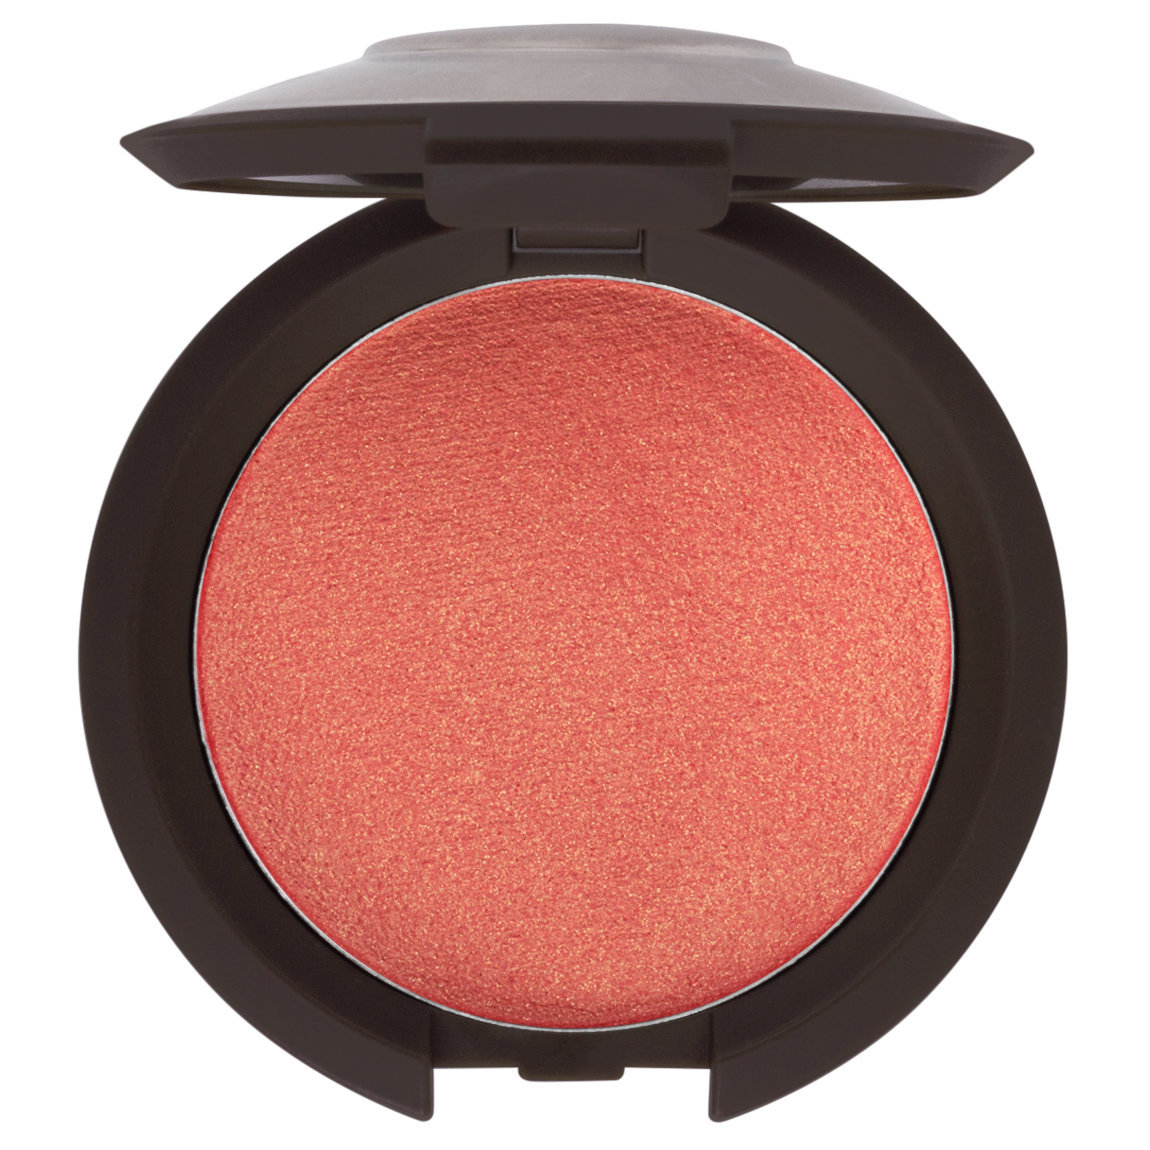 BECCA Cosmetics Luminous Blush Snapdragon alternative view 1 - product swatch.